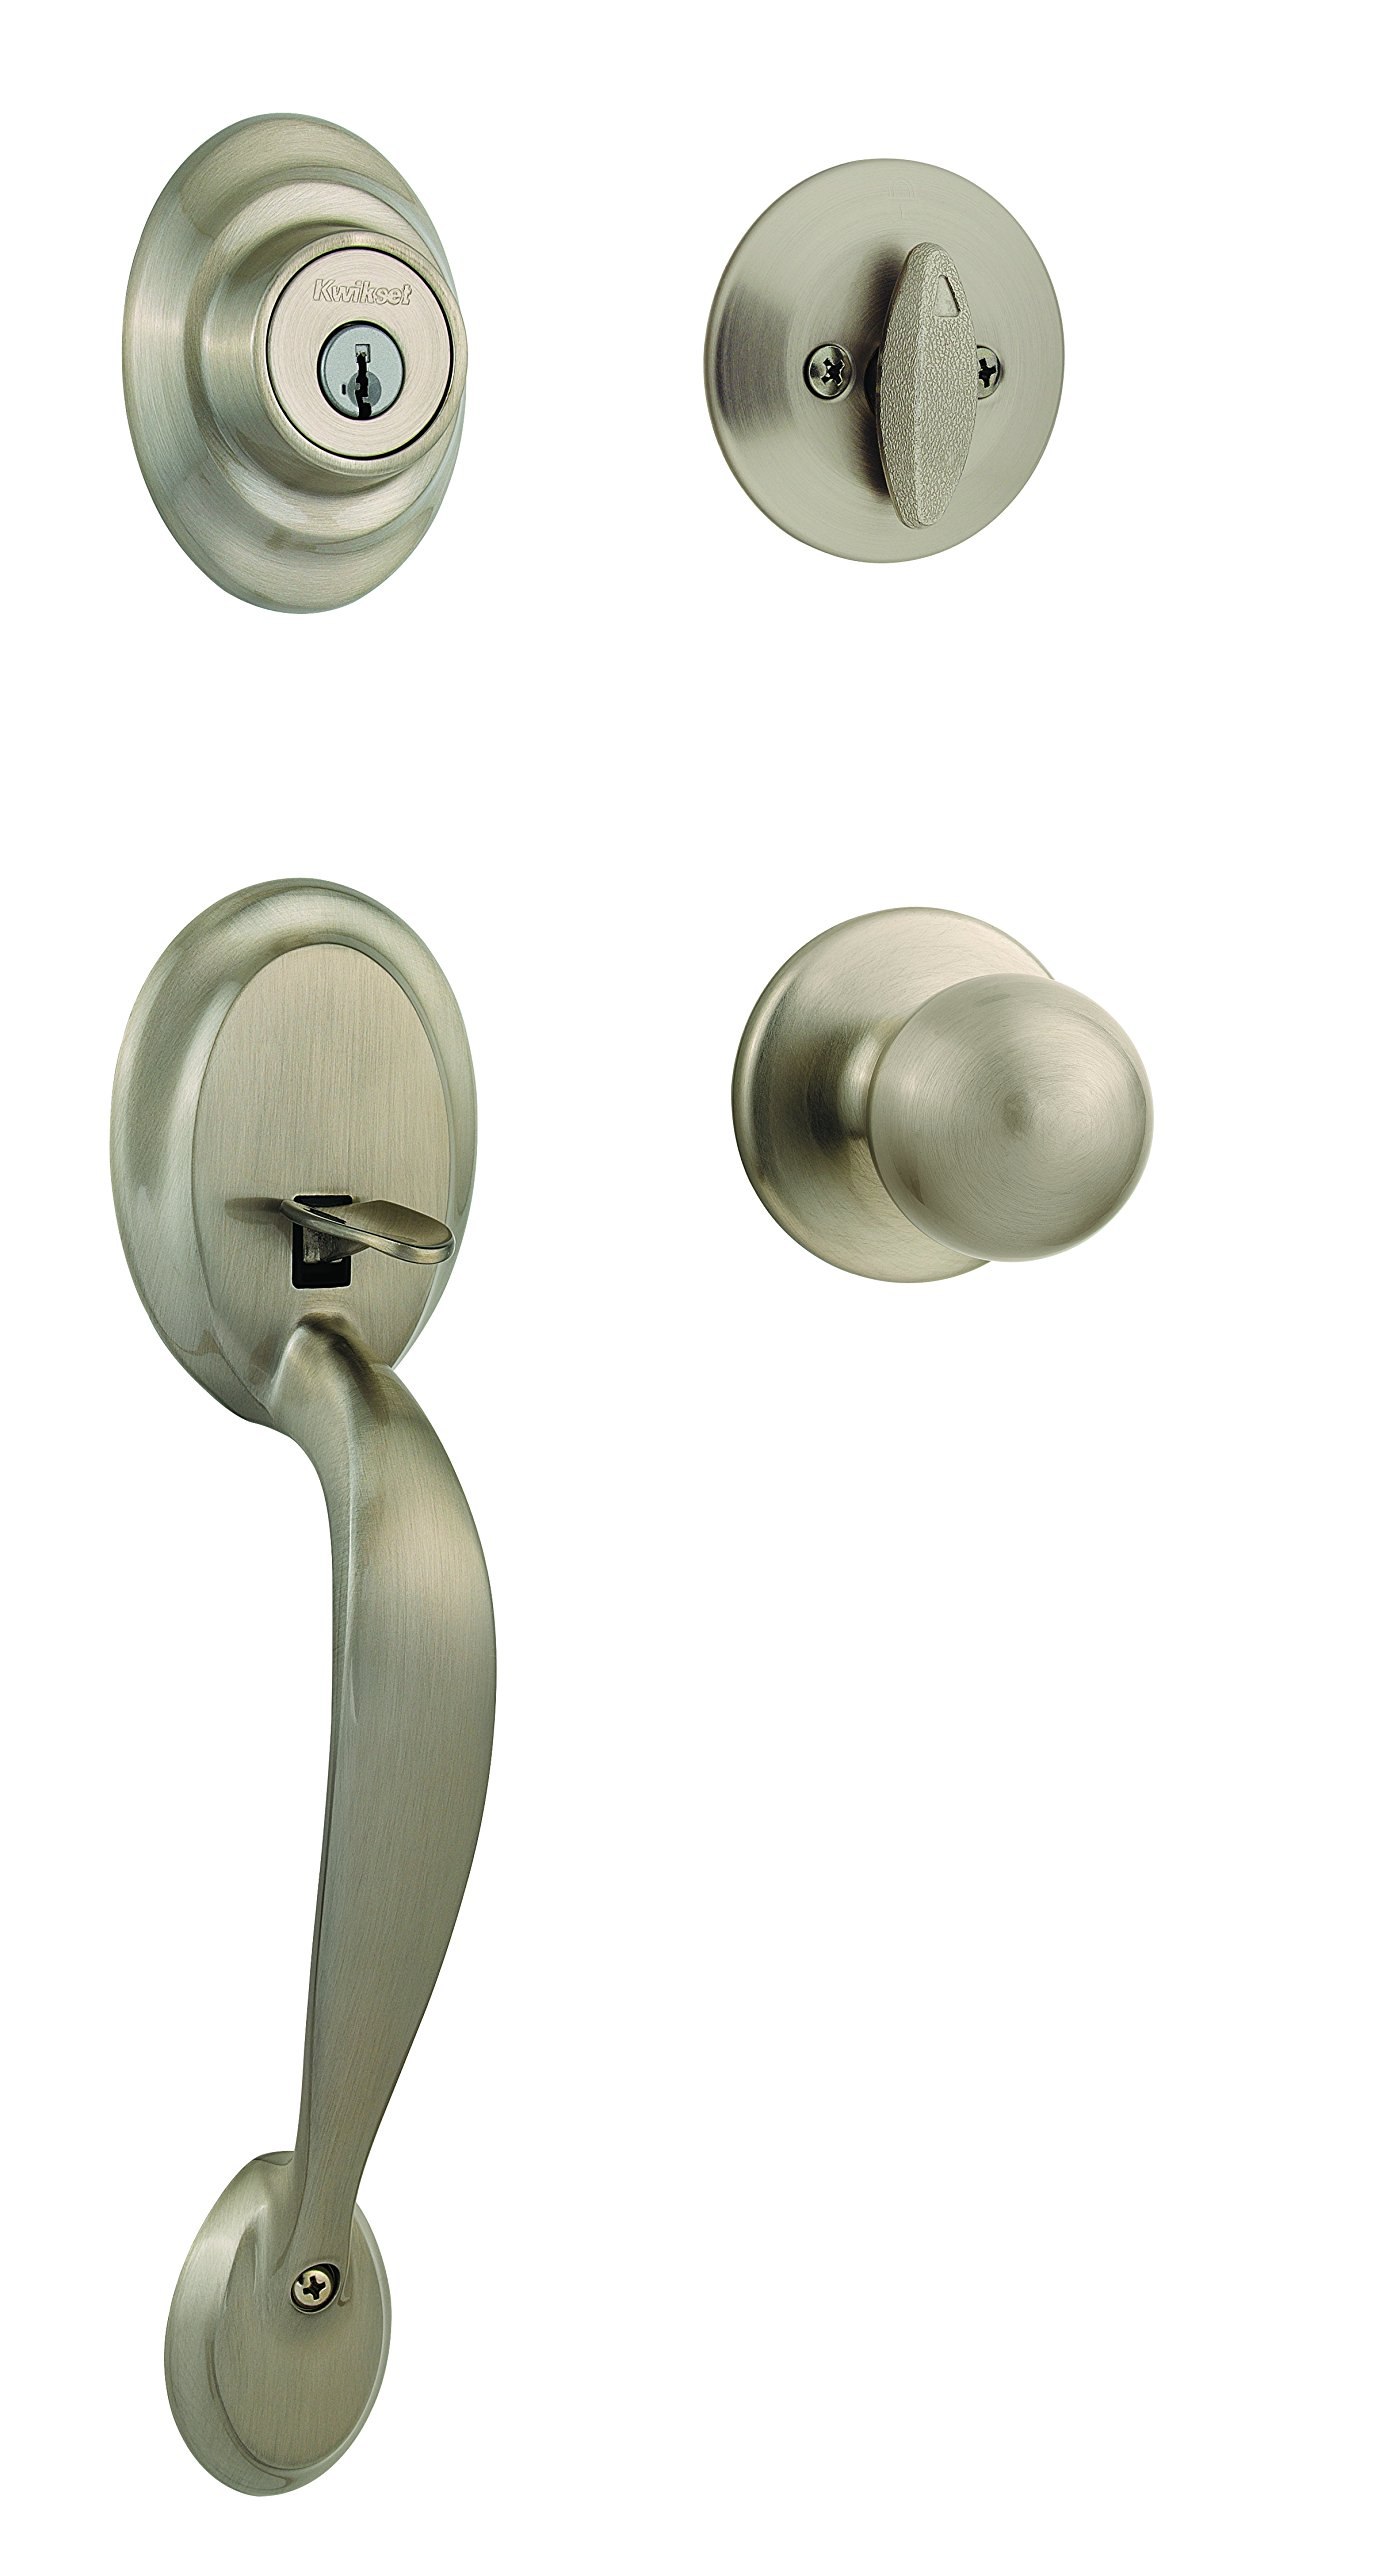 Kwikset Dakota Single Cylinder Handleset with Polo Knob featuring SmartKey in Satin Nickel